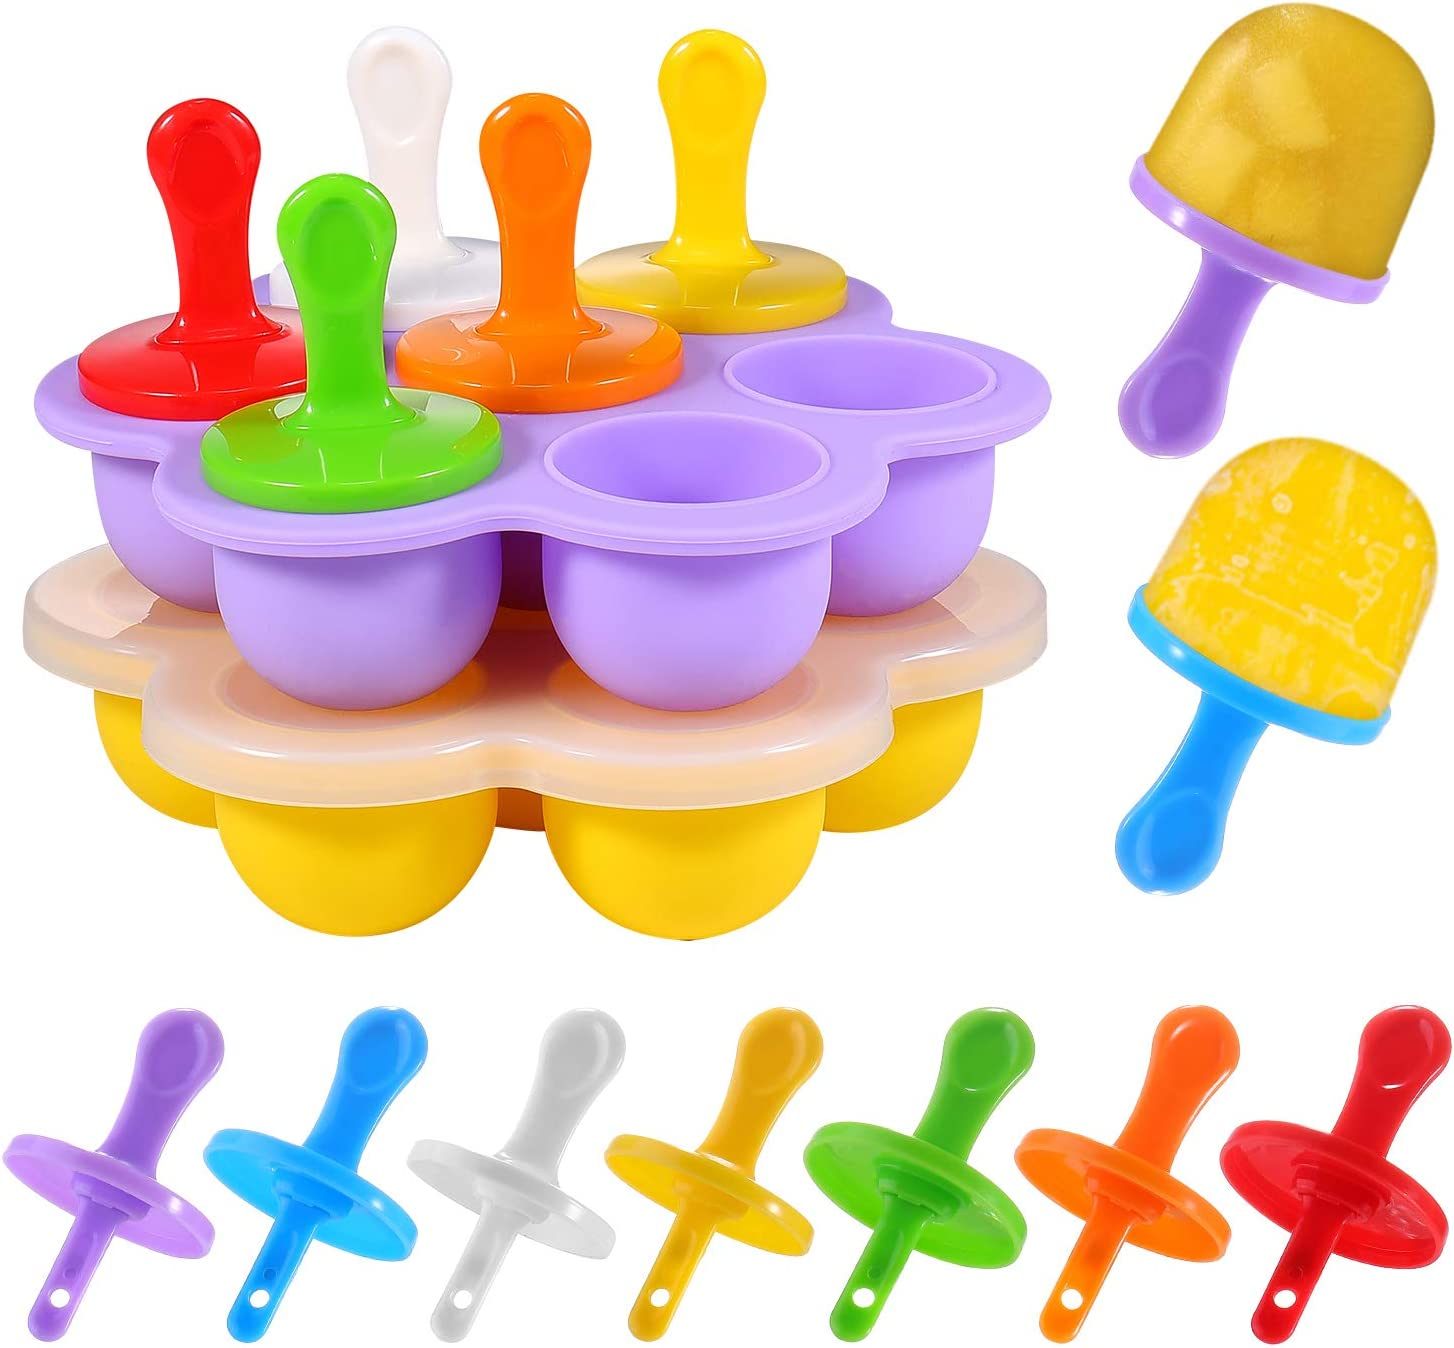 WARMWIND Silicone Pop Mold, Silicone Ice Popsicle, Non-Stick Ice Pop Make, Baby Food Storage, Food Grade Baby Food Freezer Trays, 14 PCS Plastic Sticks, Purple and Yellow(Set of 2)